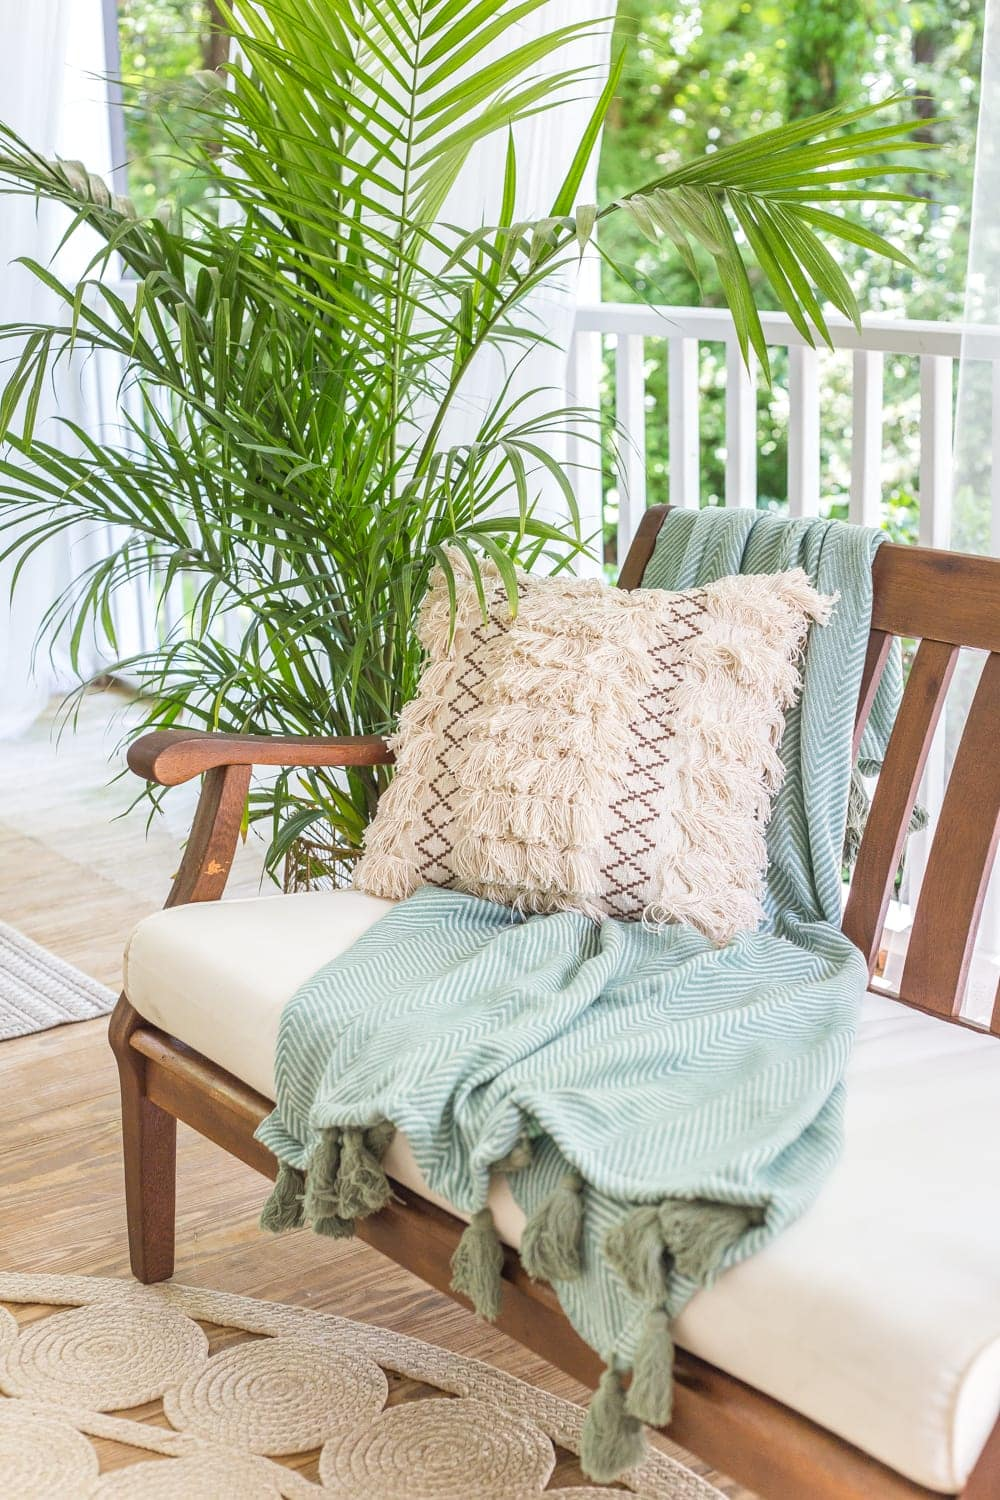 How To Dry Clean Sofa At Home How To Restore Wood Outdoor Furniture Bless Er House